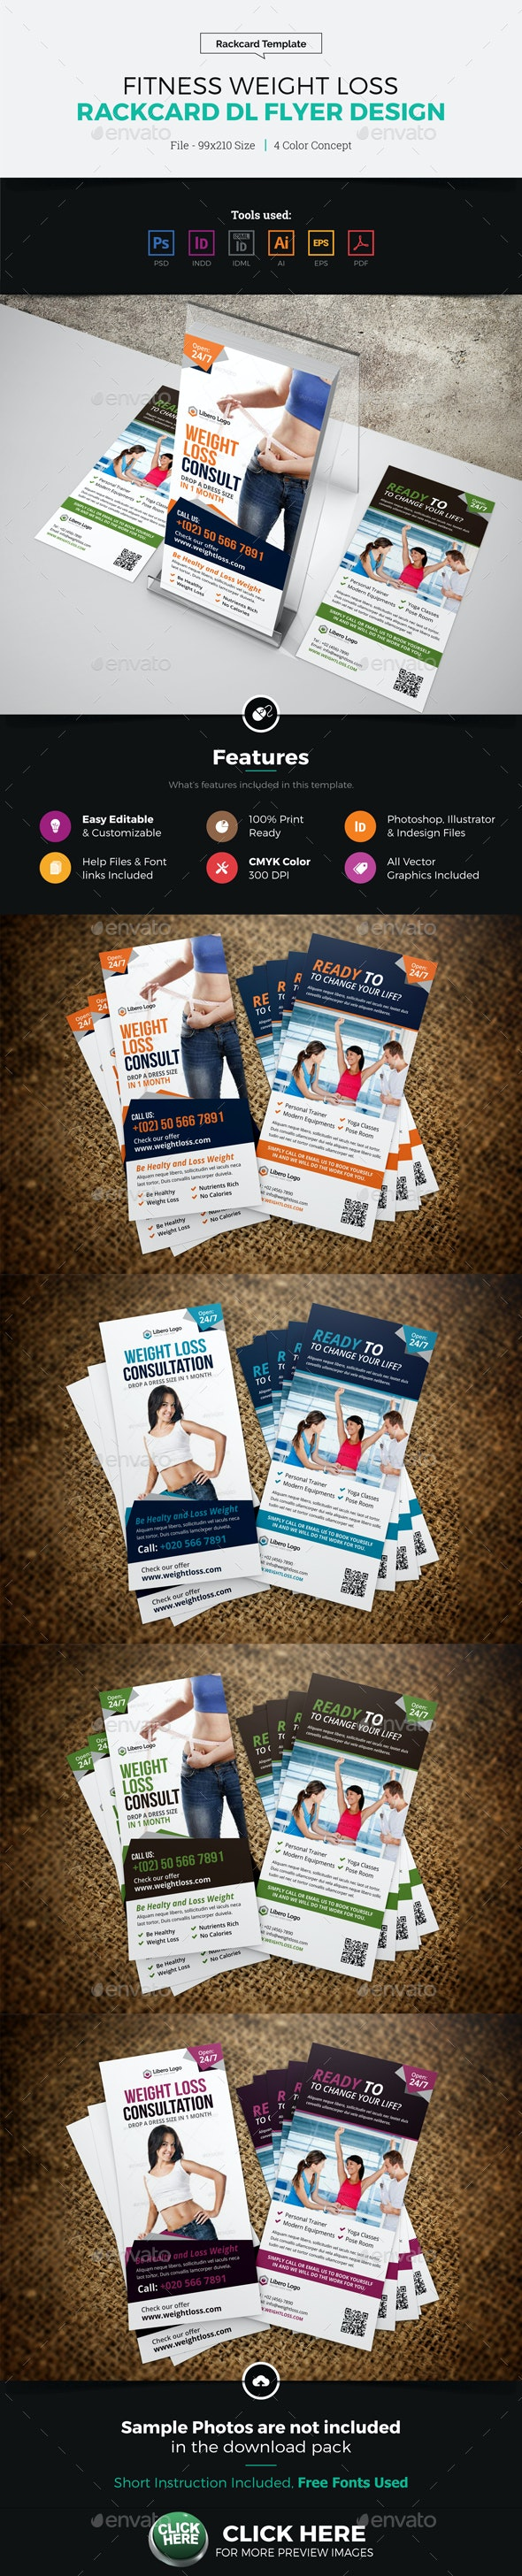 Fitness Weight Loss Rackcard DL Flyer Design - Corporate Flyers